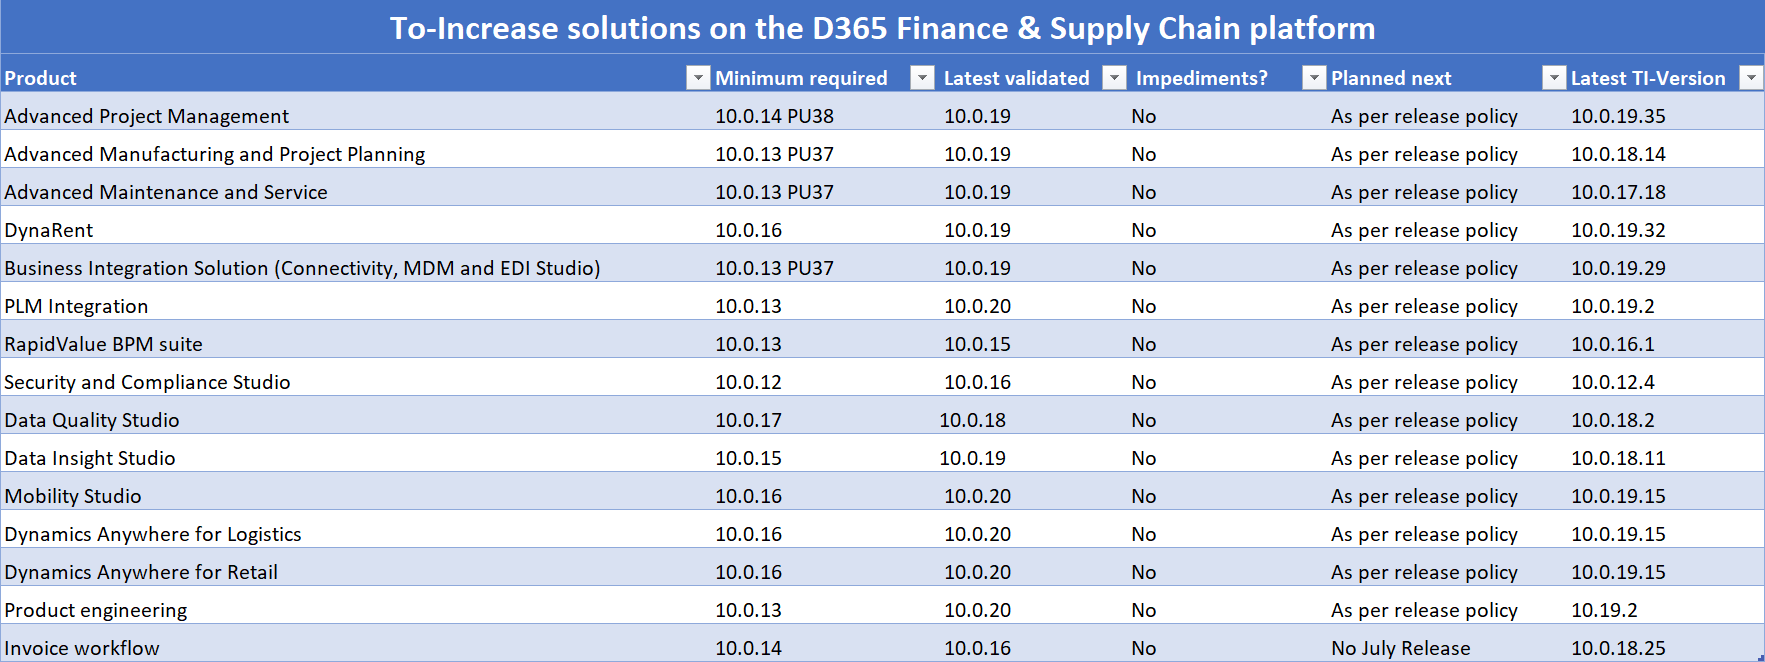 To-Increase Solutions D365 F&SCM